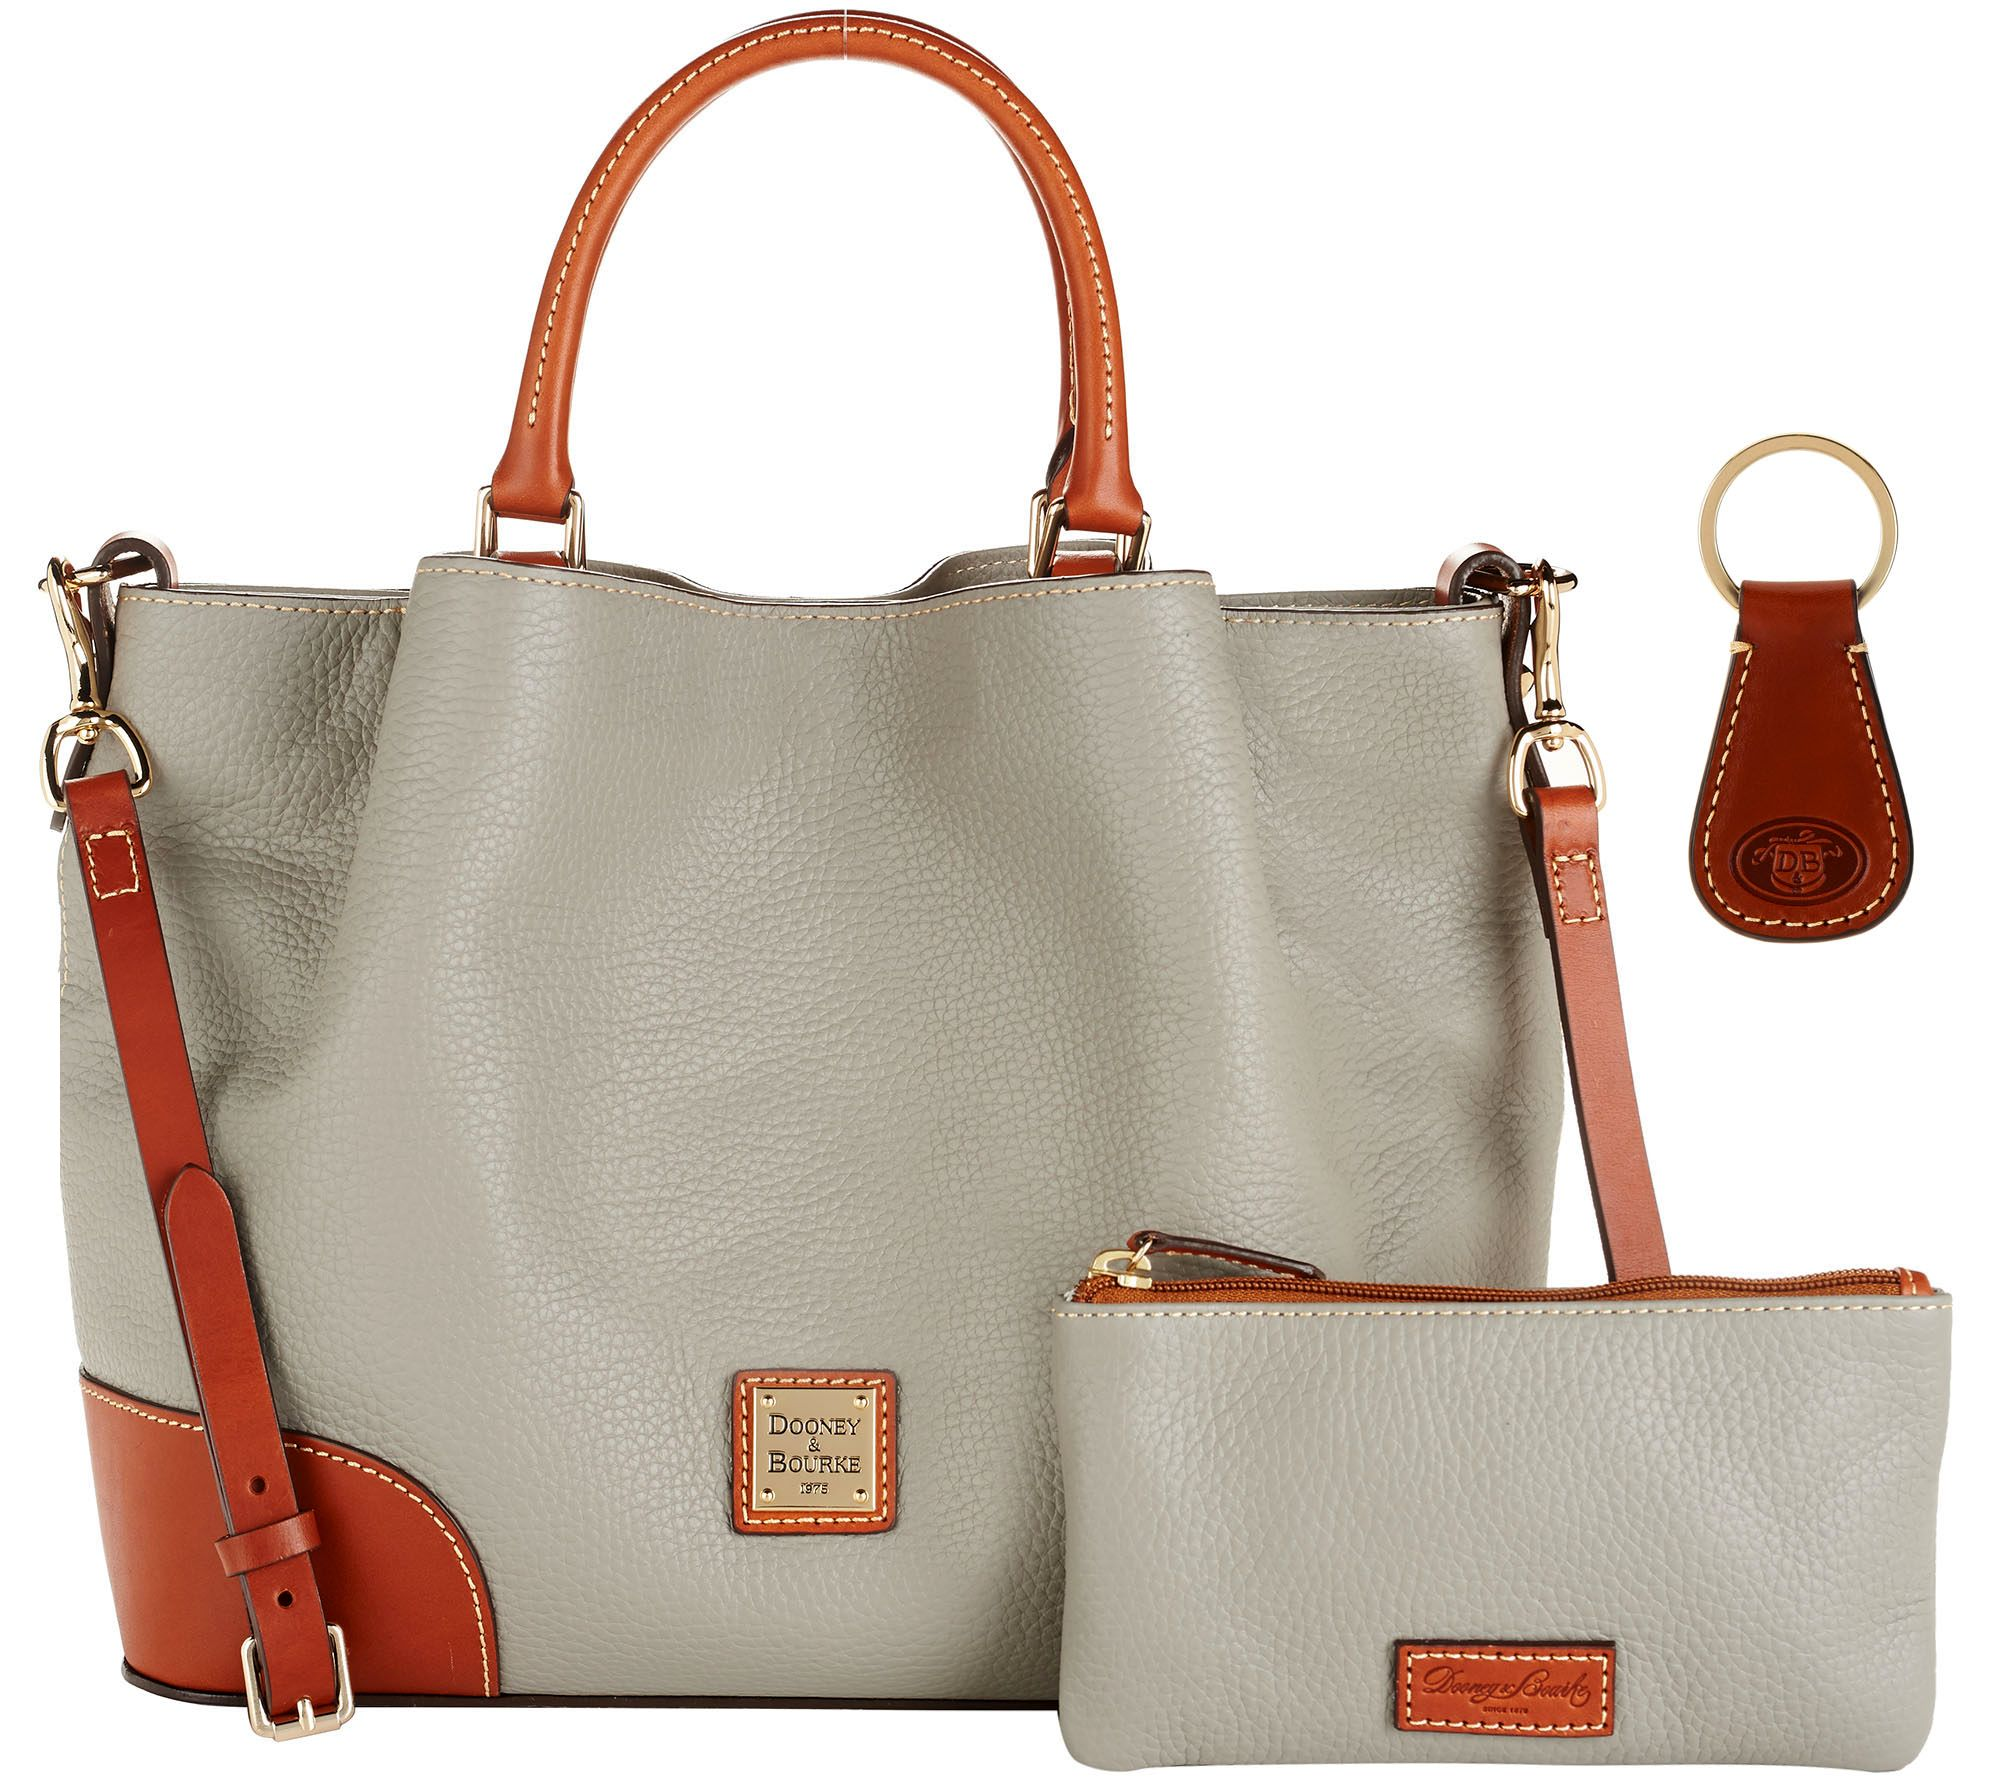 Dooney Bourke Pebble Leather Brenna Satchel With Accessories Page 1 Qvc